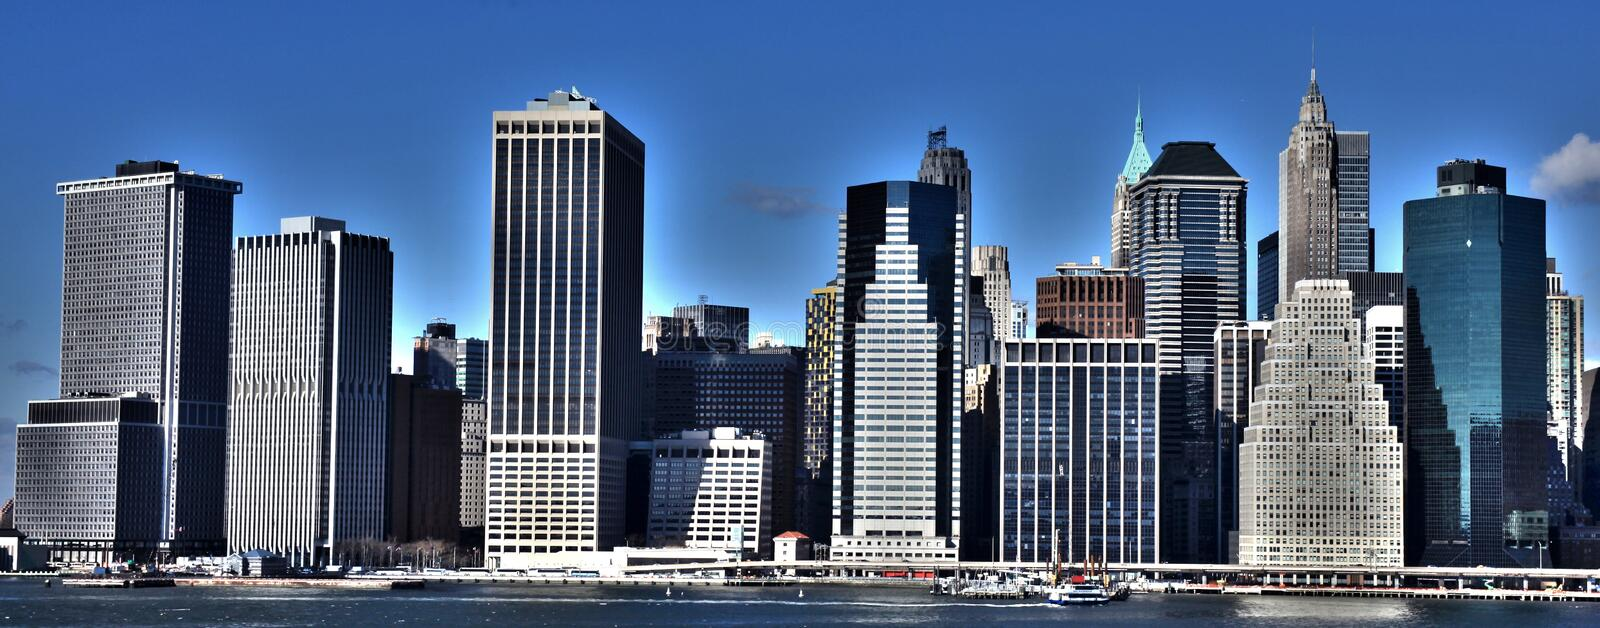 Download New York sky line stock photo. Image of image, pictures - 16456438